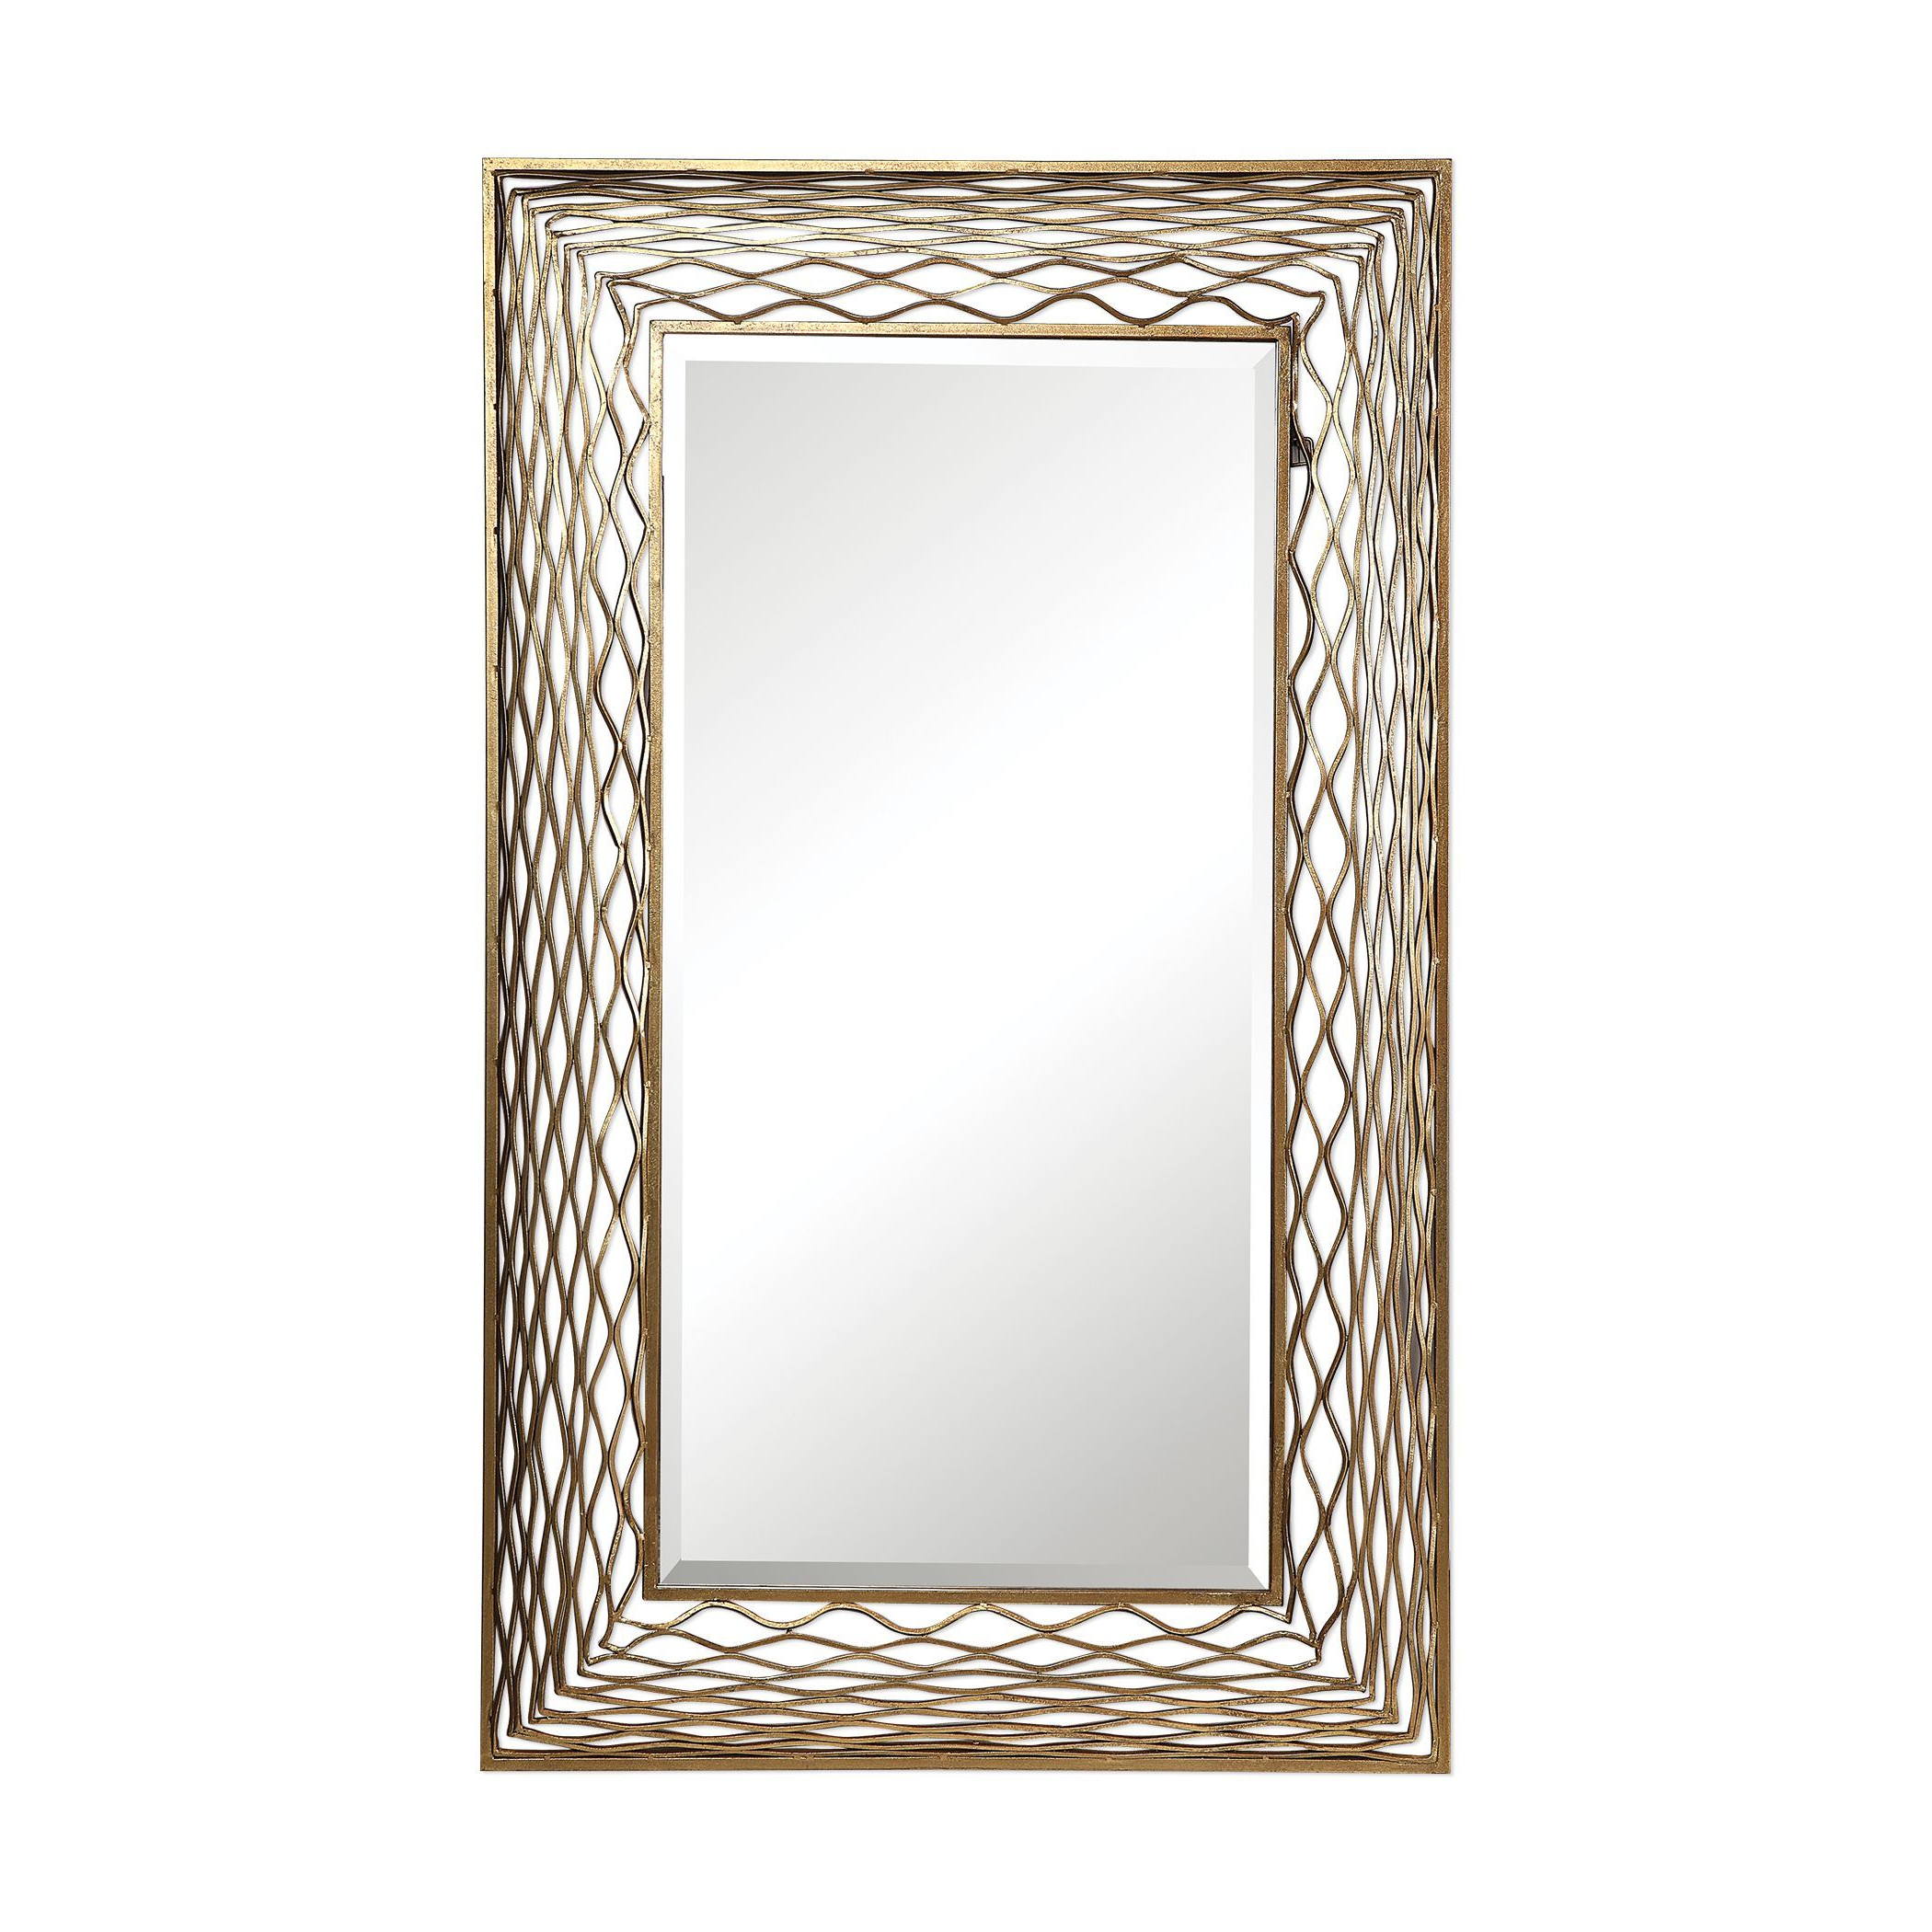 Preferred 8 Easy And Cheap Diy Ideas: Wall Mirror Bedroom Beautiful White Wall With Regard To Burnes Oval Traditional Wall Mirrors (View 20 of 20)